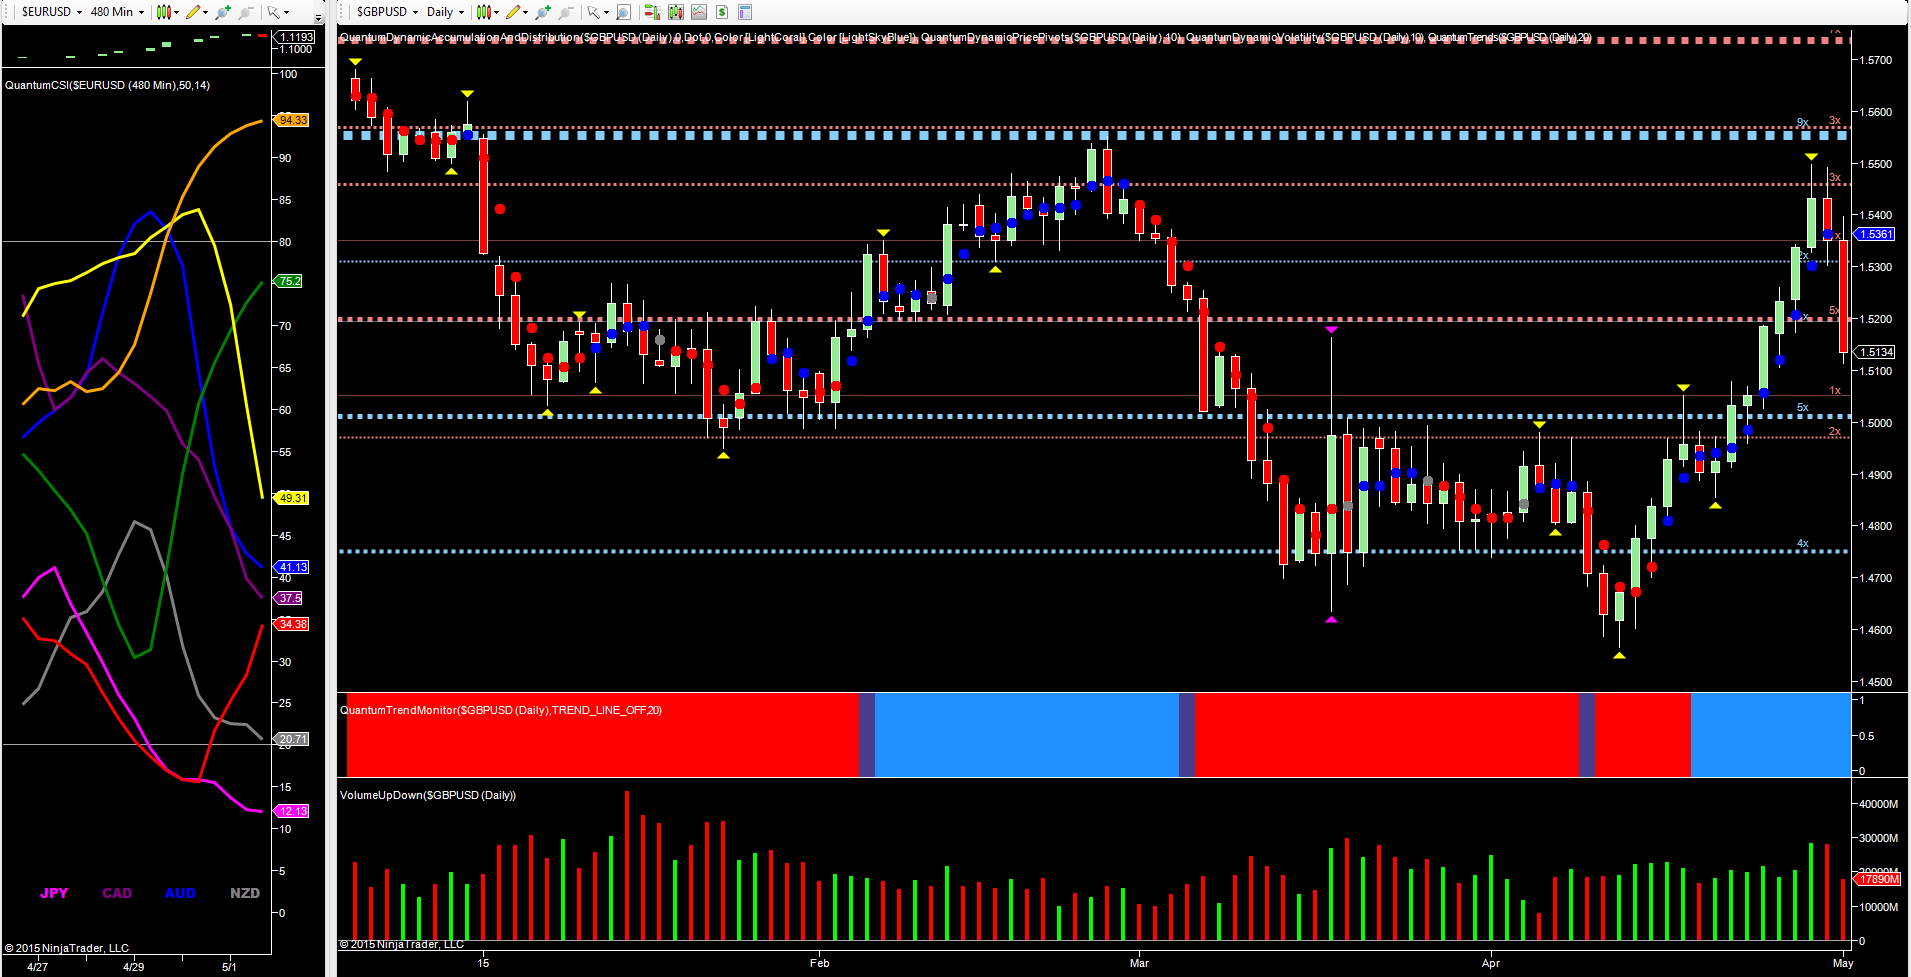 GBP/USD - daily chart